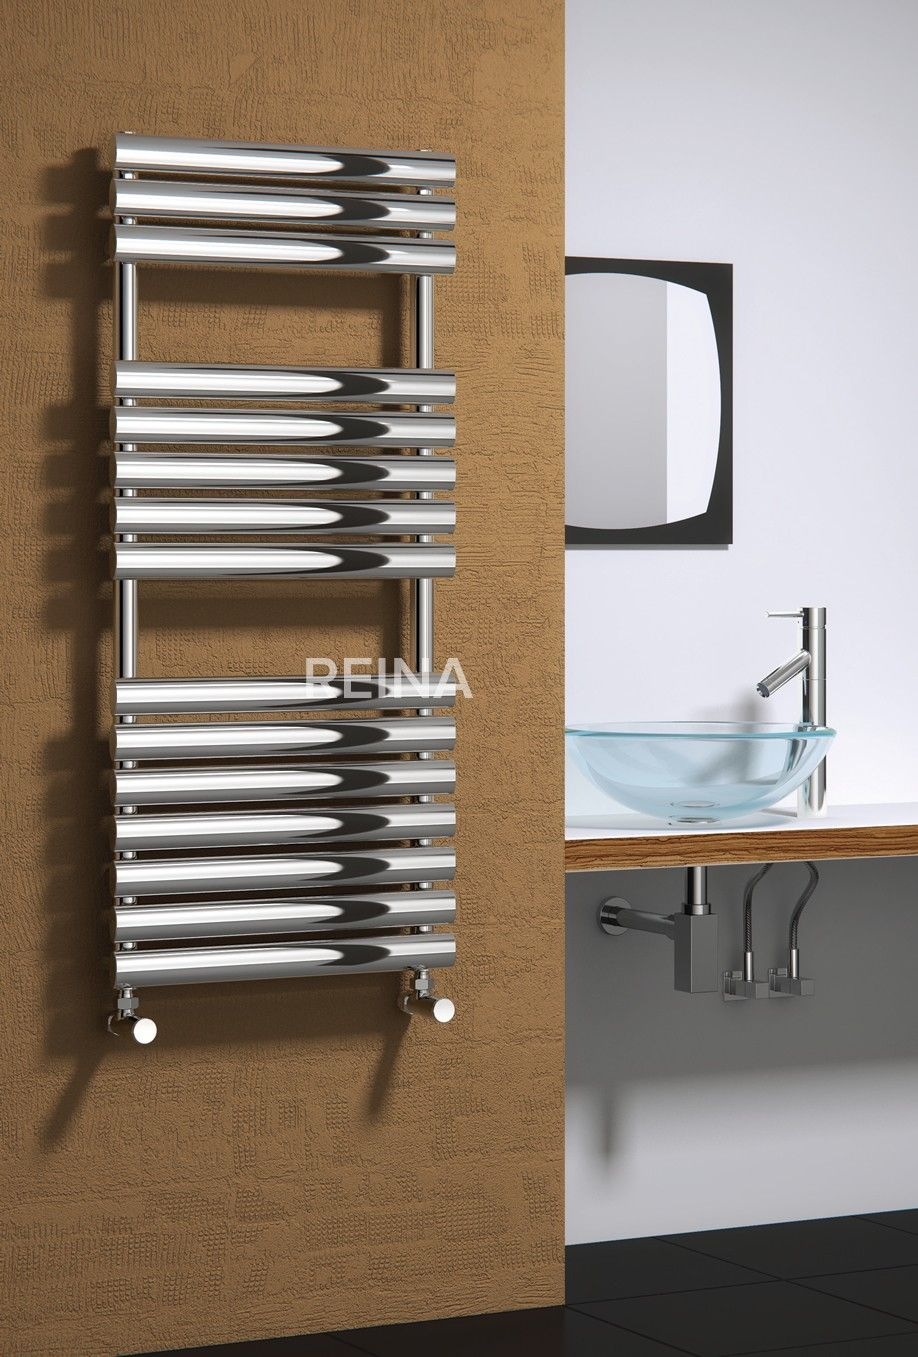 Reina are the UKu0027s leading suppliers of